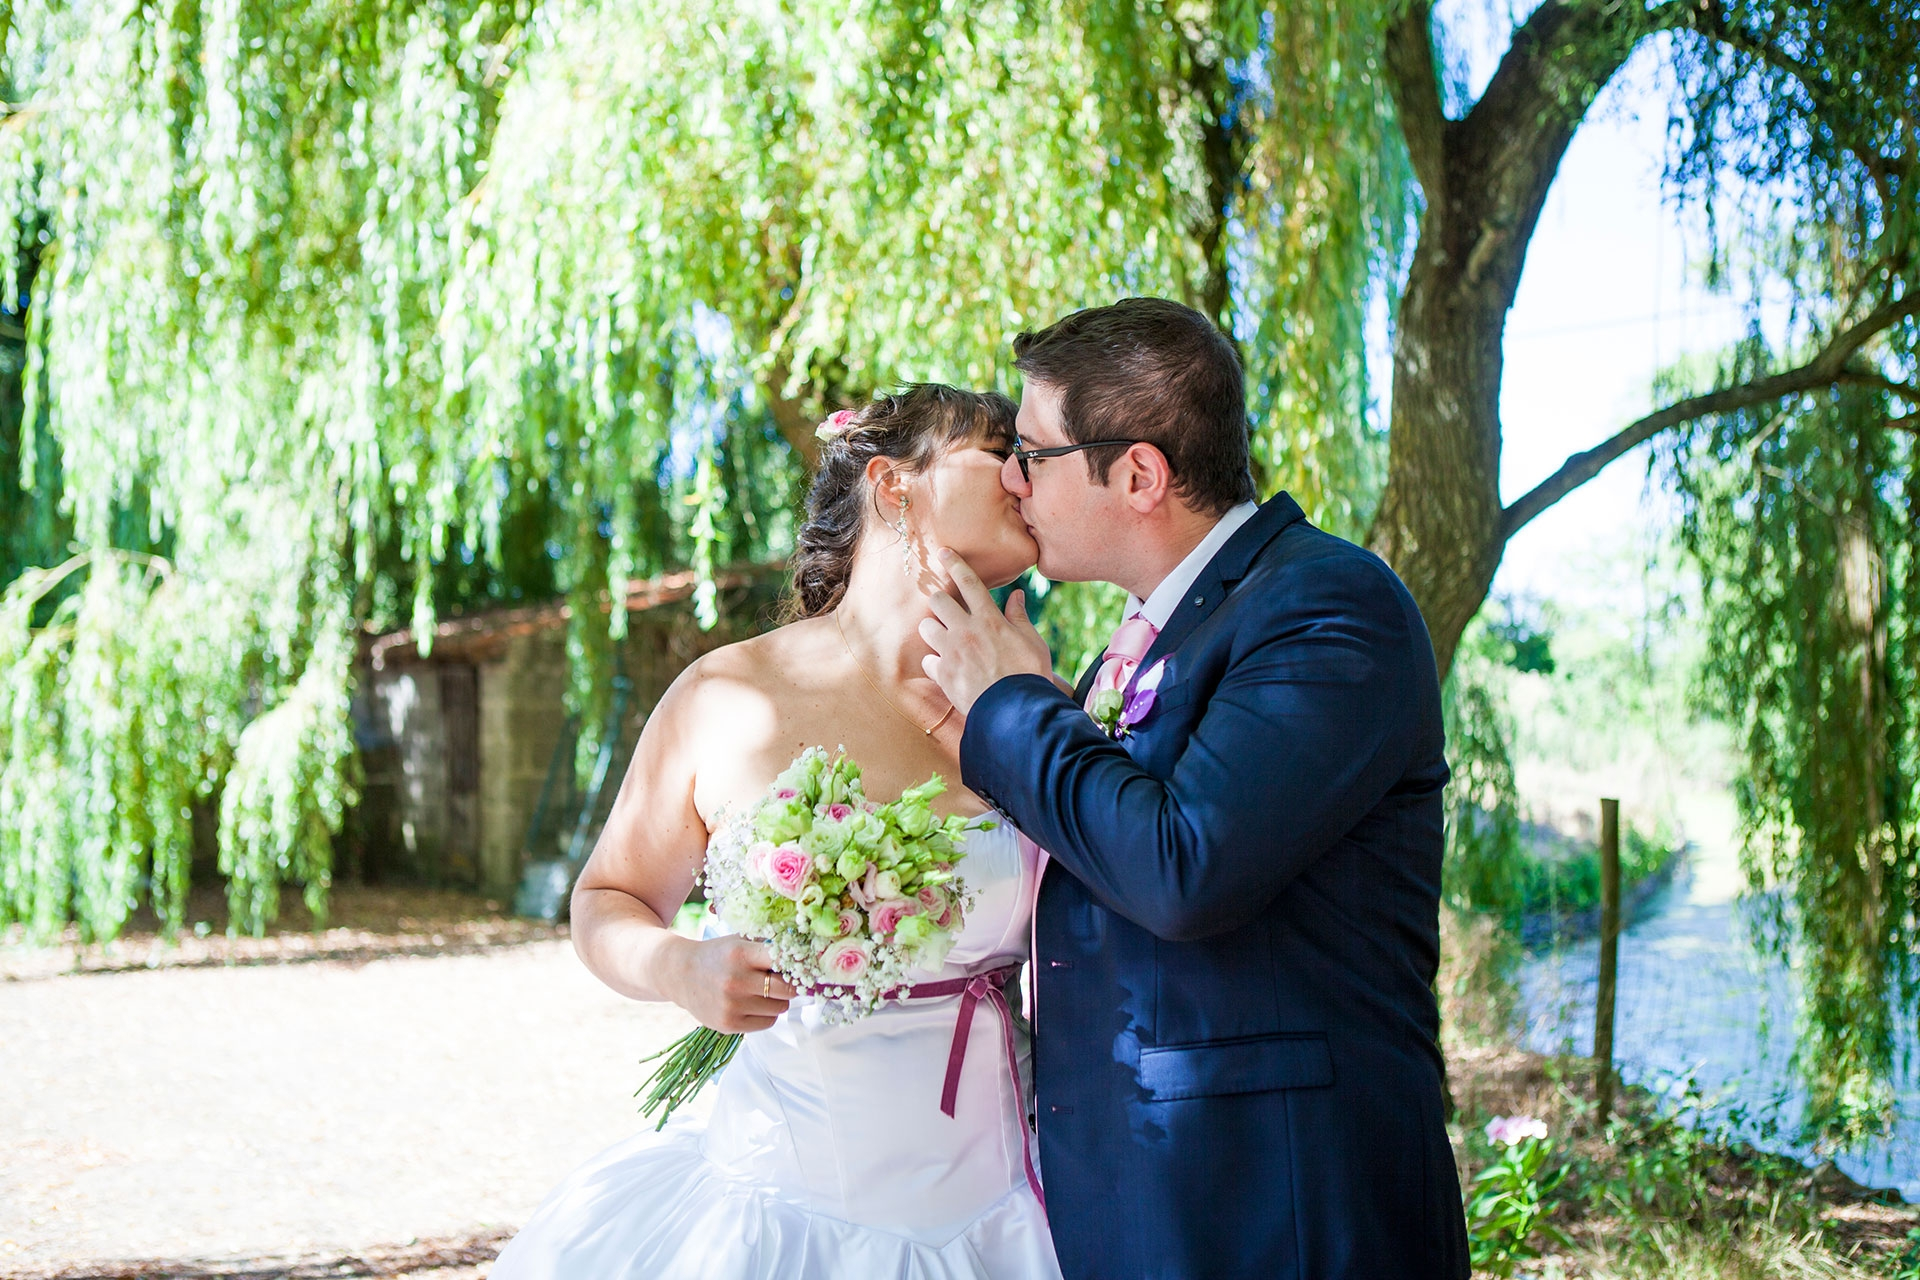 particuliers-evenements-mariages-oui-france&philippe-33